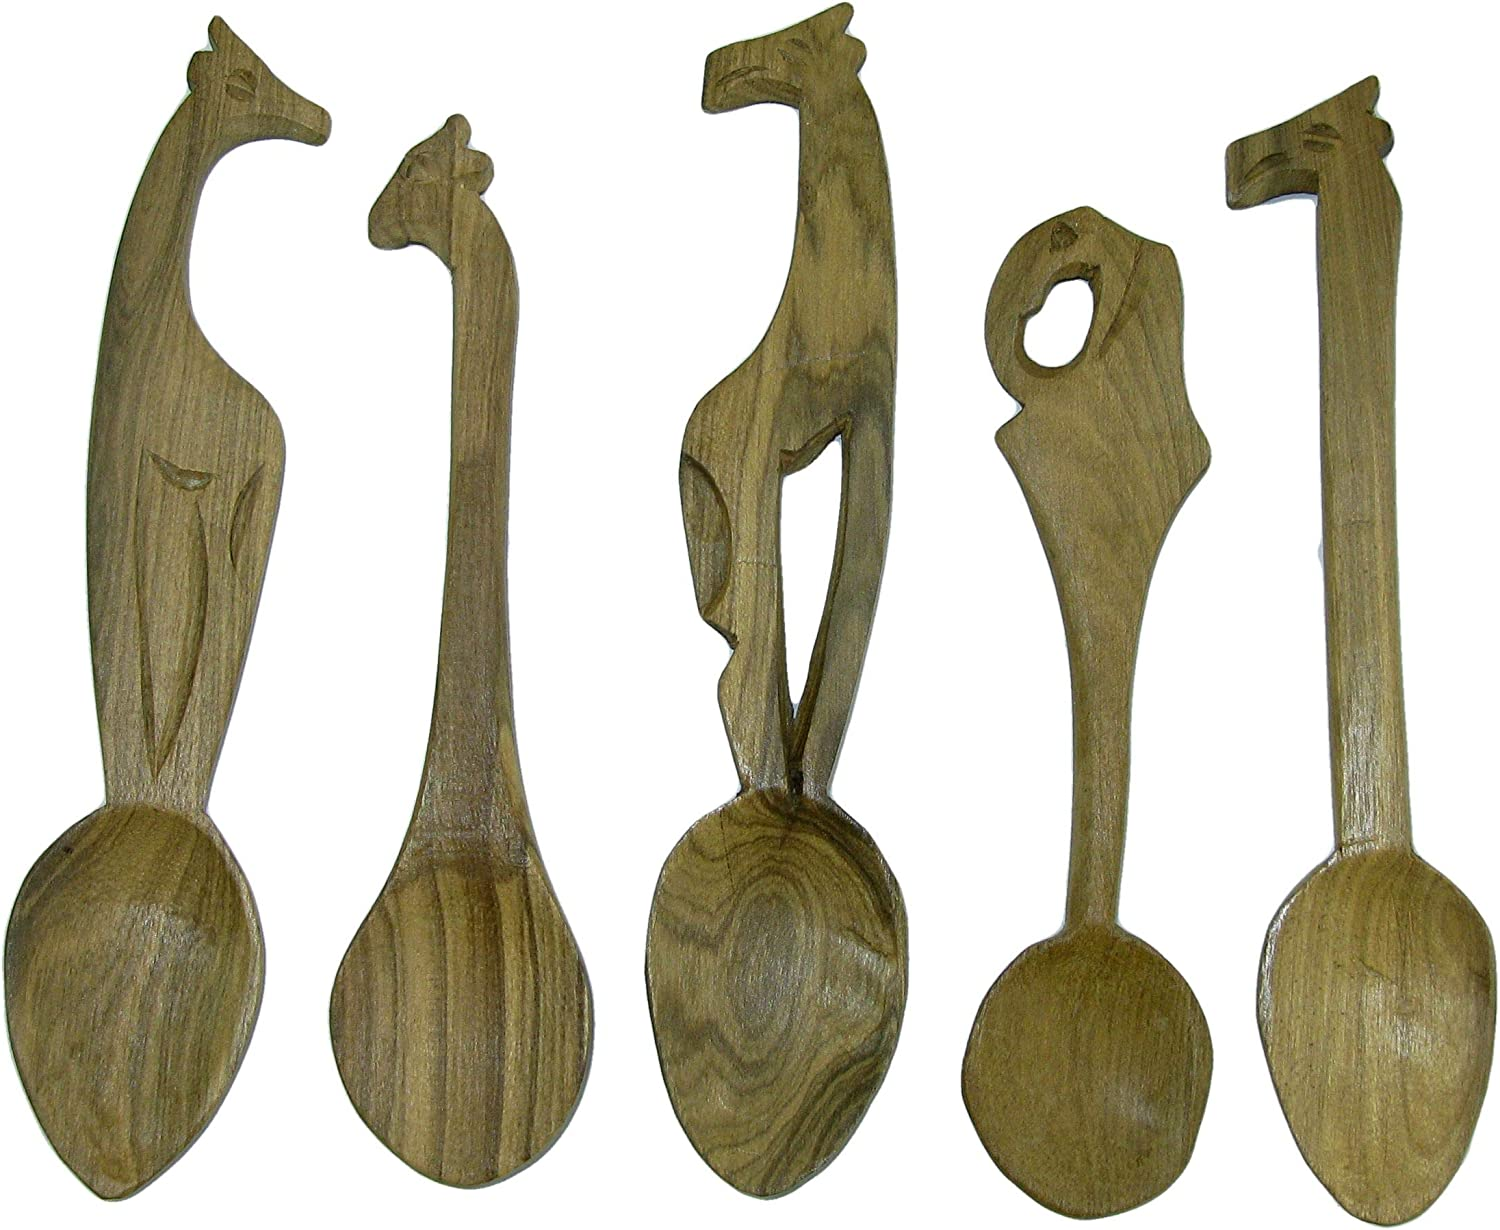 15 cm Spoons Elephant Giraffe Lion etc The Friendly Trading Co Set of 5 Wildlife theme African Handcrafted wooden Teaspoons 6 inch